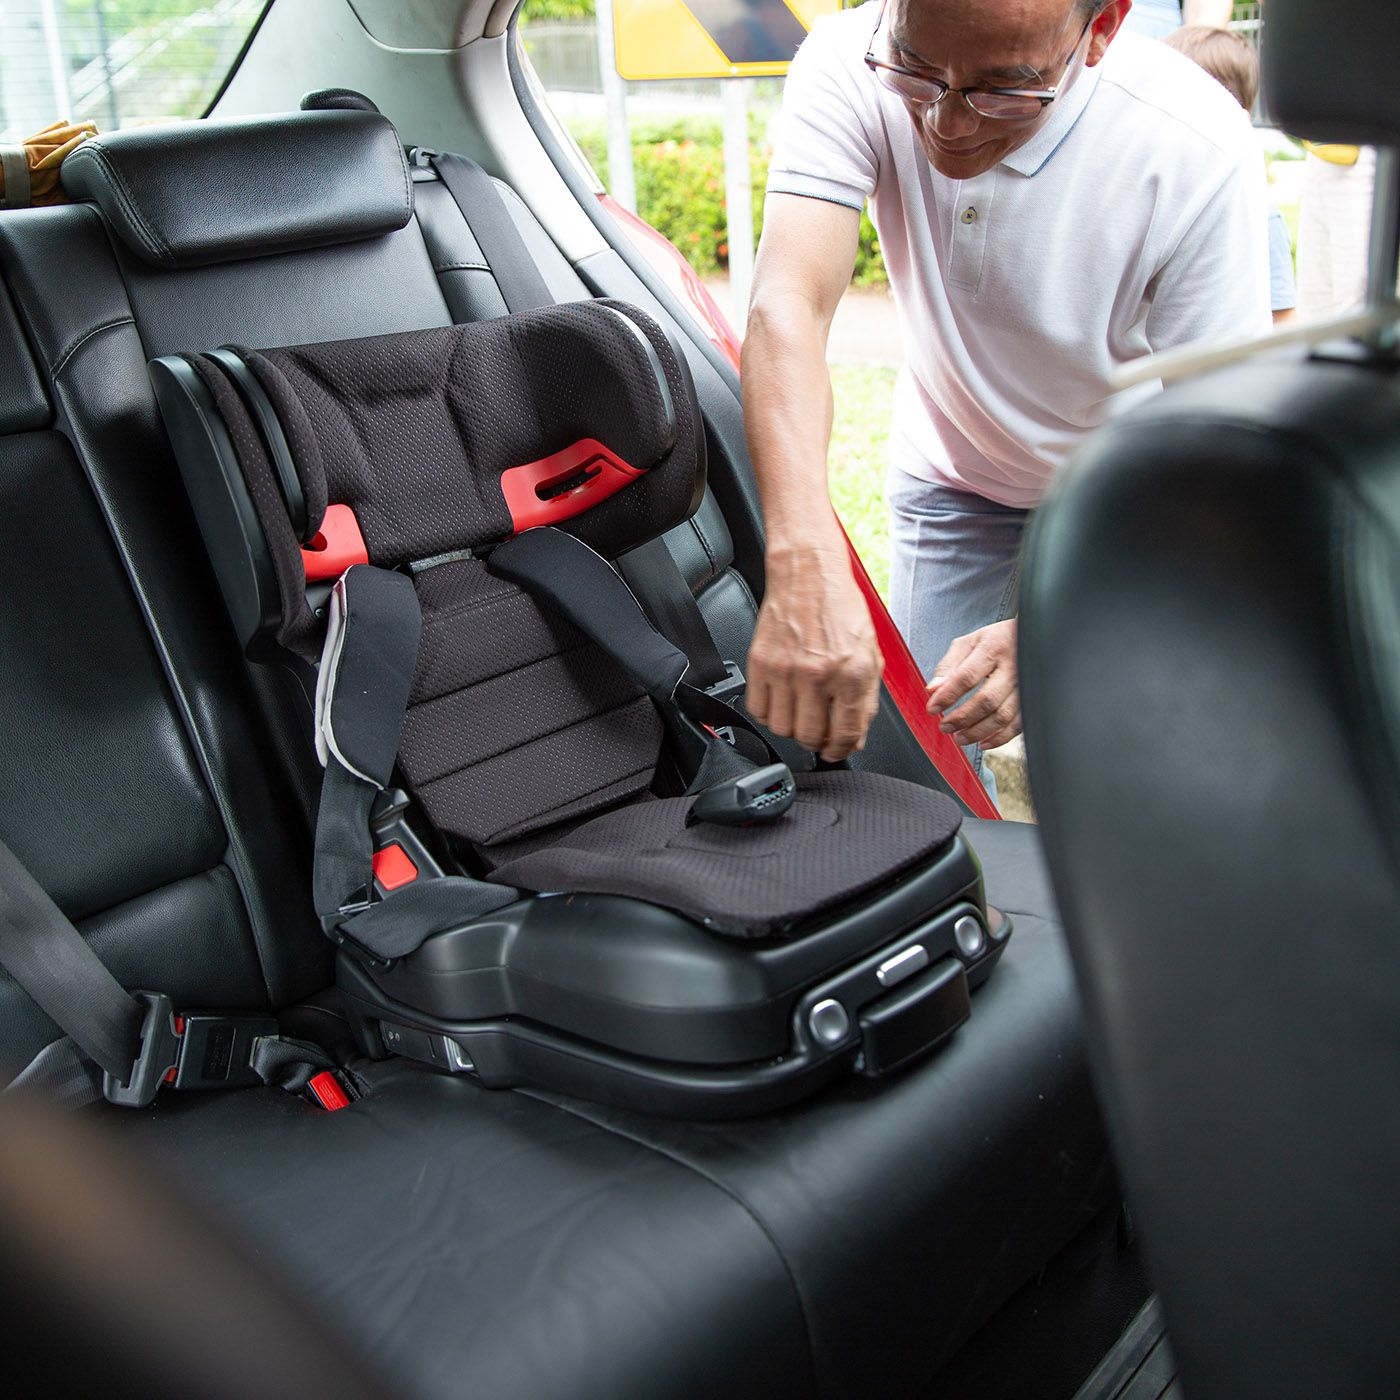 TinySeats • Never leave safety behind in 2020 (With images